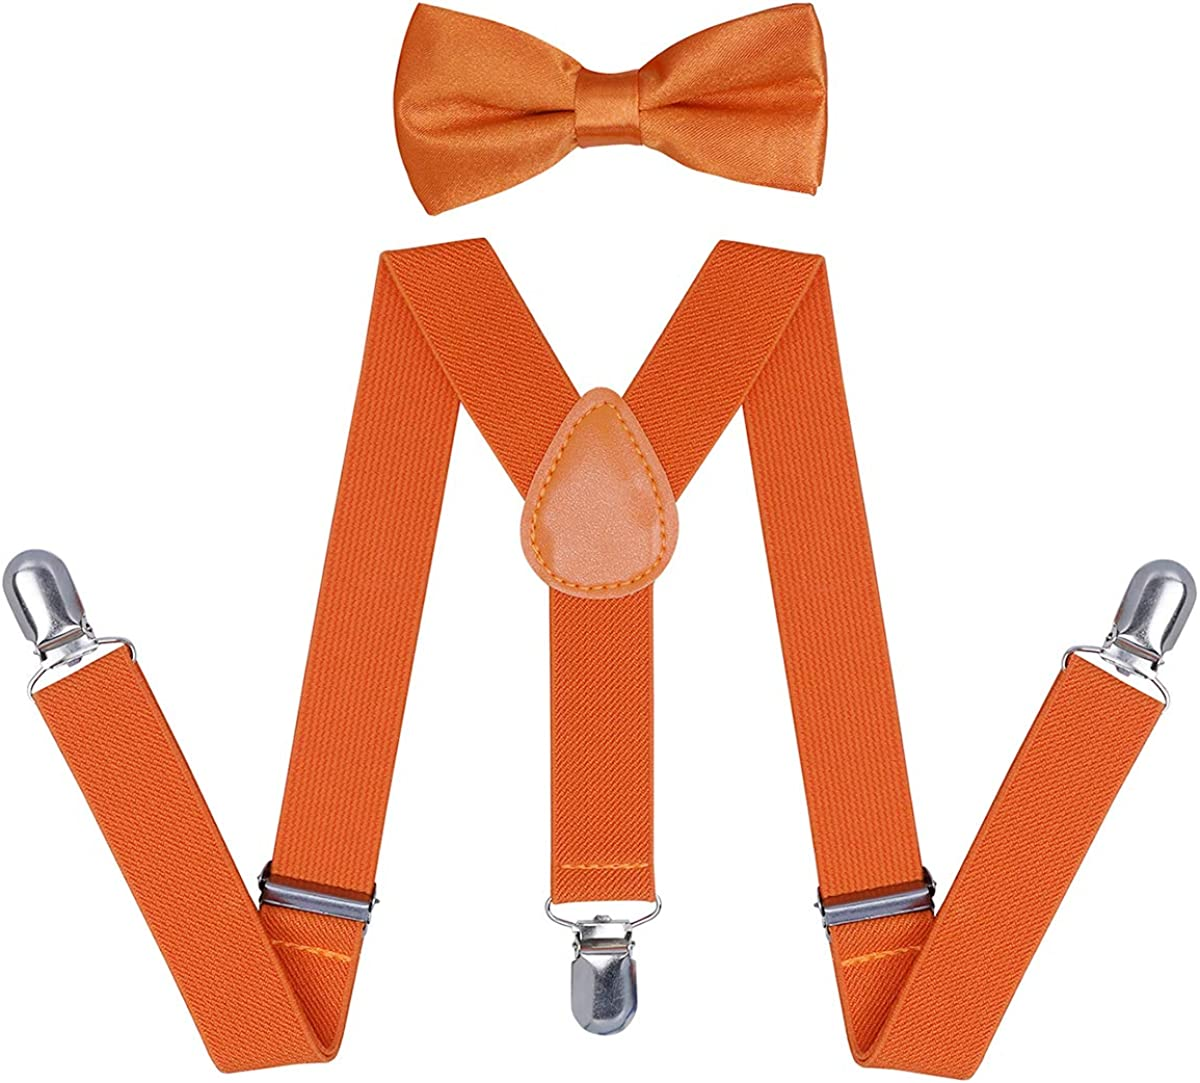 Adjustable Elastic Y-Shape Suspenders Bowtie Set with 3 Strong Clips for Show Party Children Kids Braces Bow Tie 2-Piece Set for Boys Girls